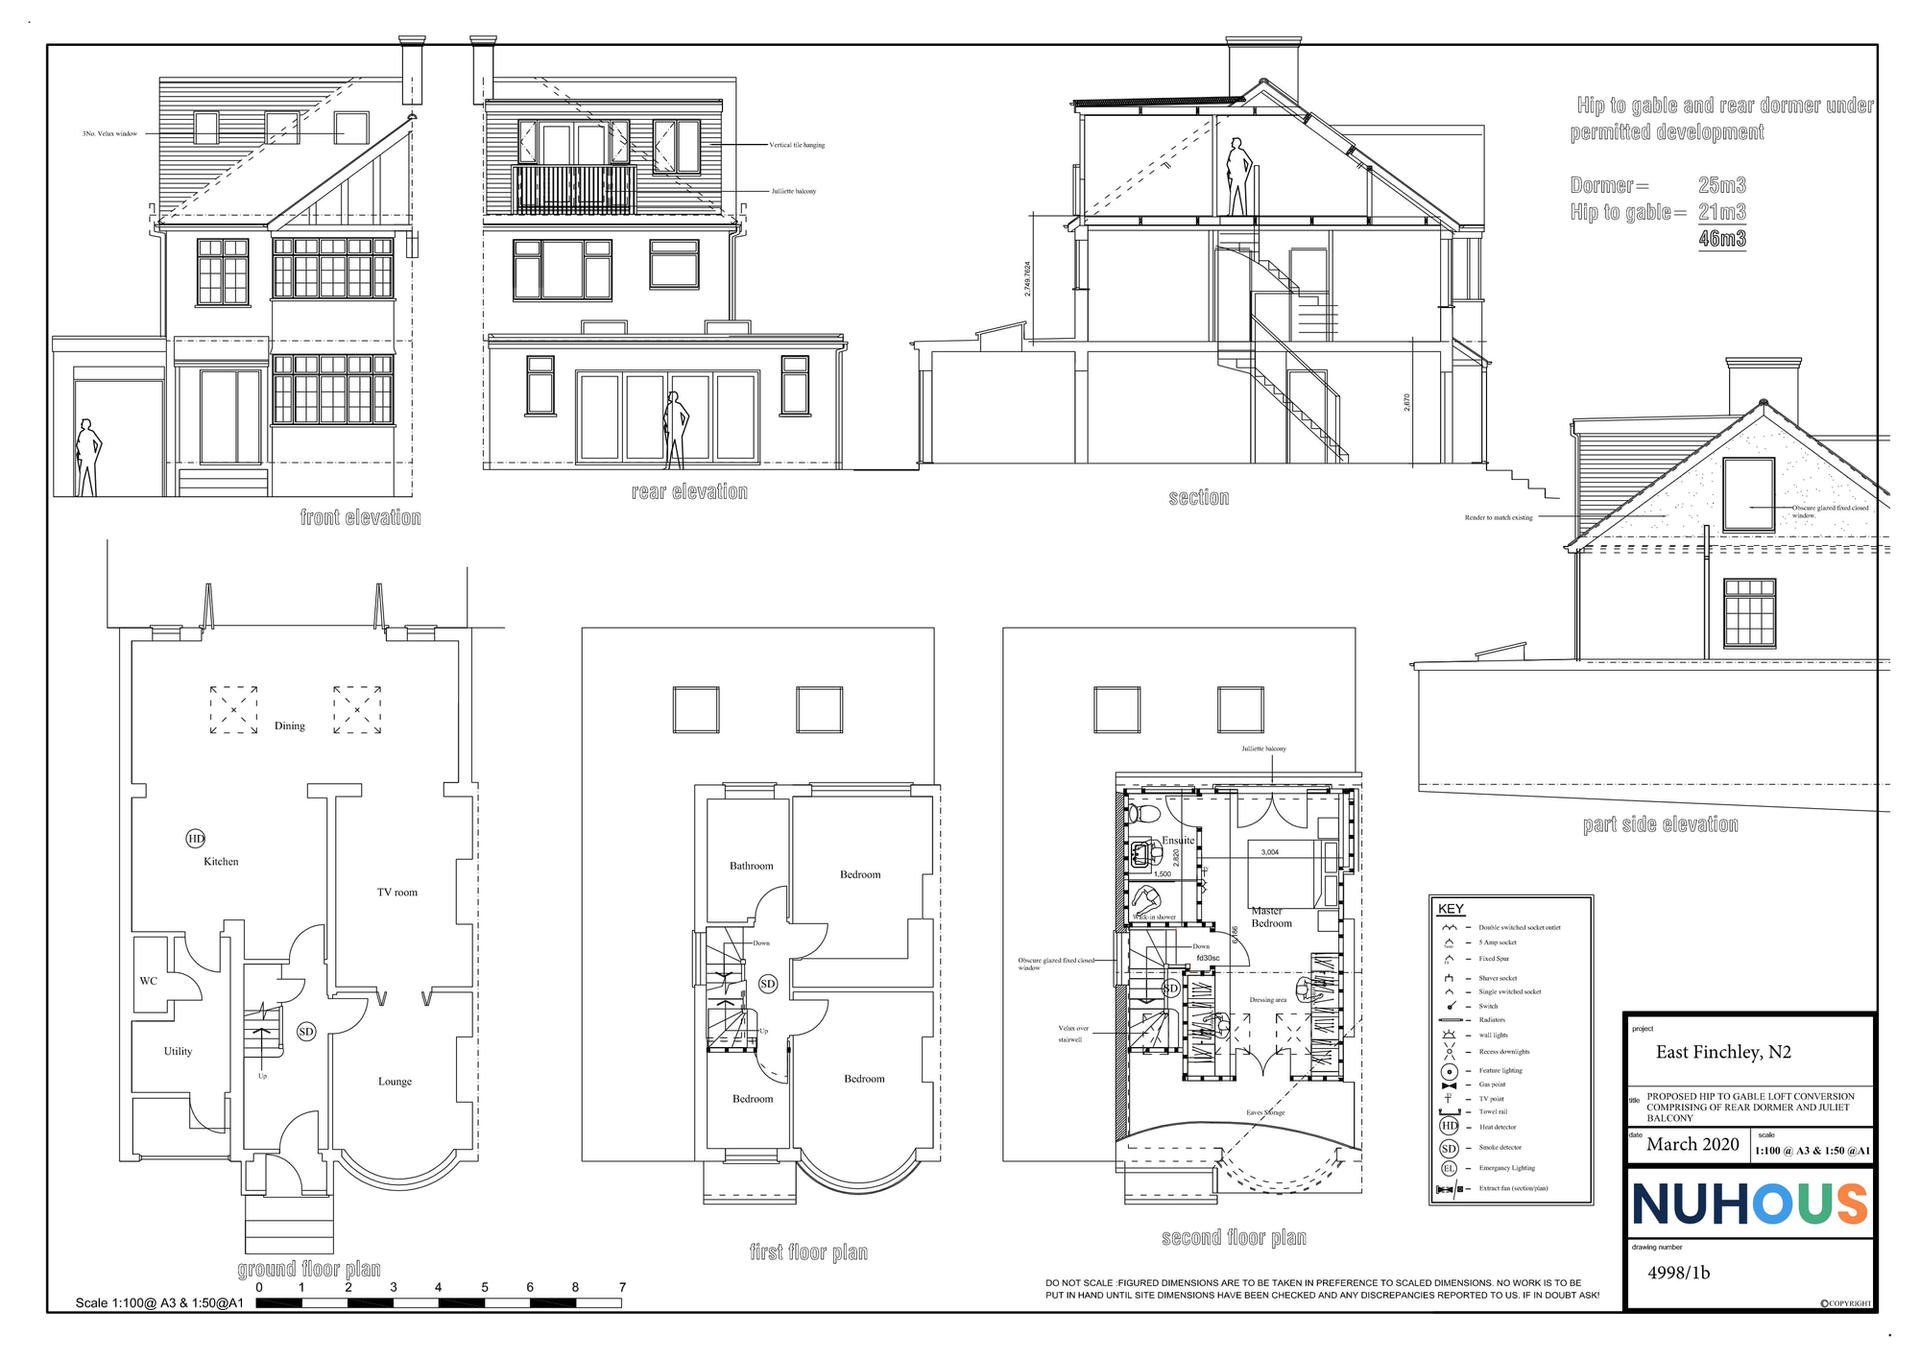 Architecture Loft Conversion East Finchley N2 Proposed